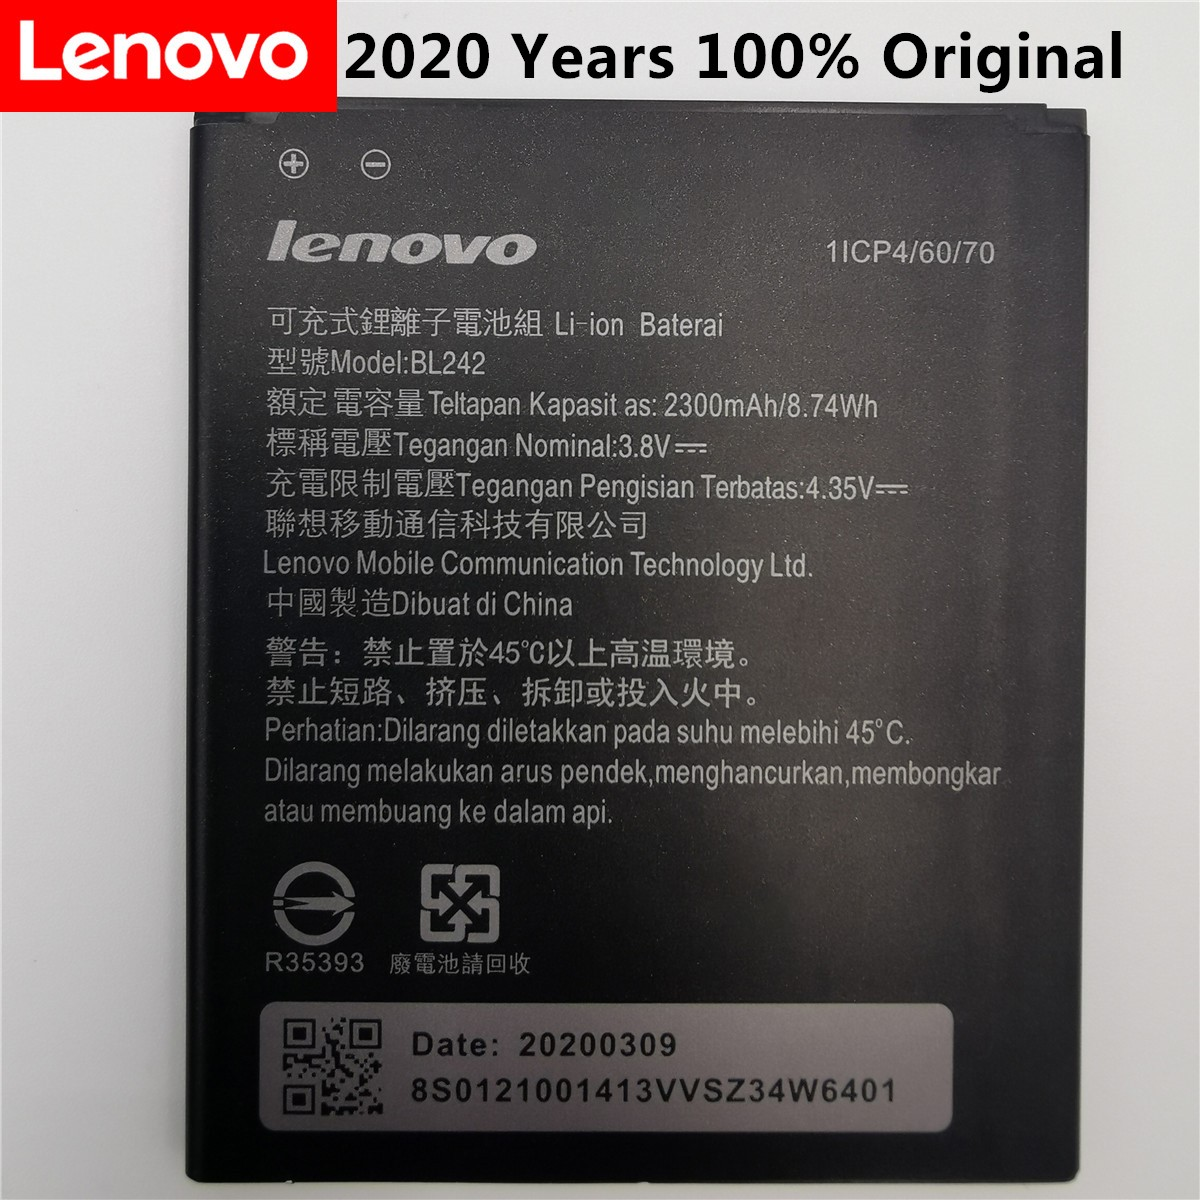 Original <font><b>Lenovo</b></font> A6010 Battery High Quality 2300mAh <font><b>BL242</b></font> Back up Battery Replacement For <font><b>Lenovo</b></font> A6010 Plus Mobile Phone Battery image